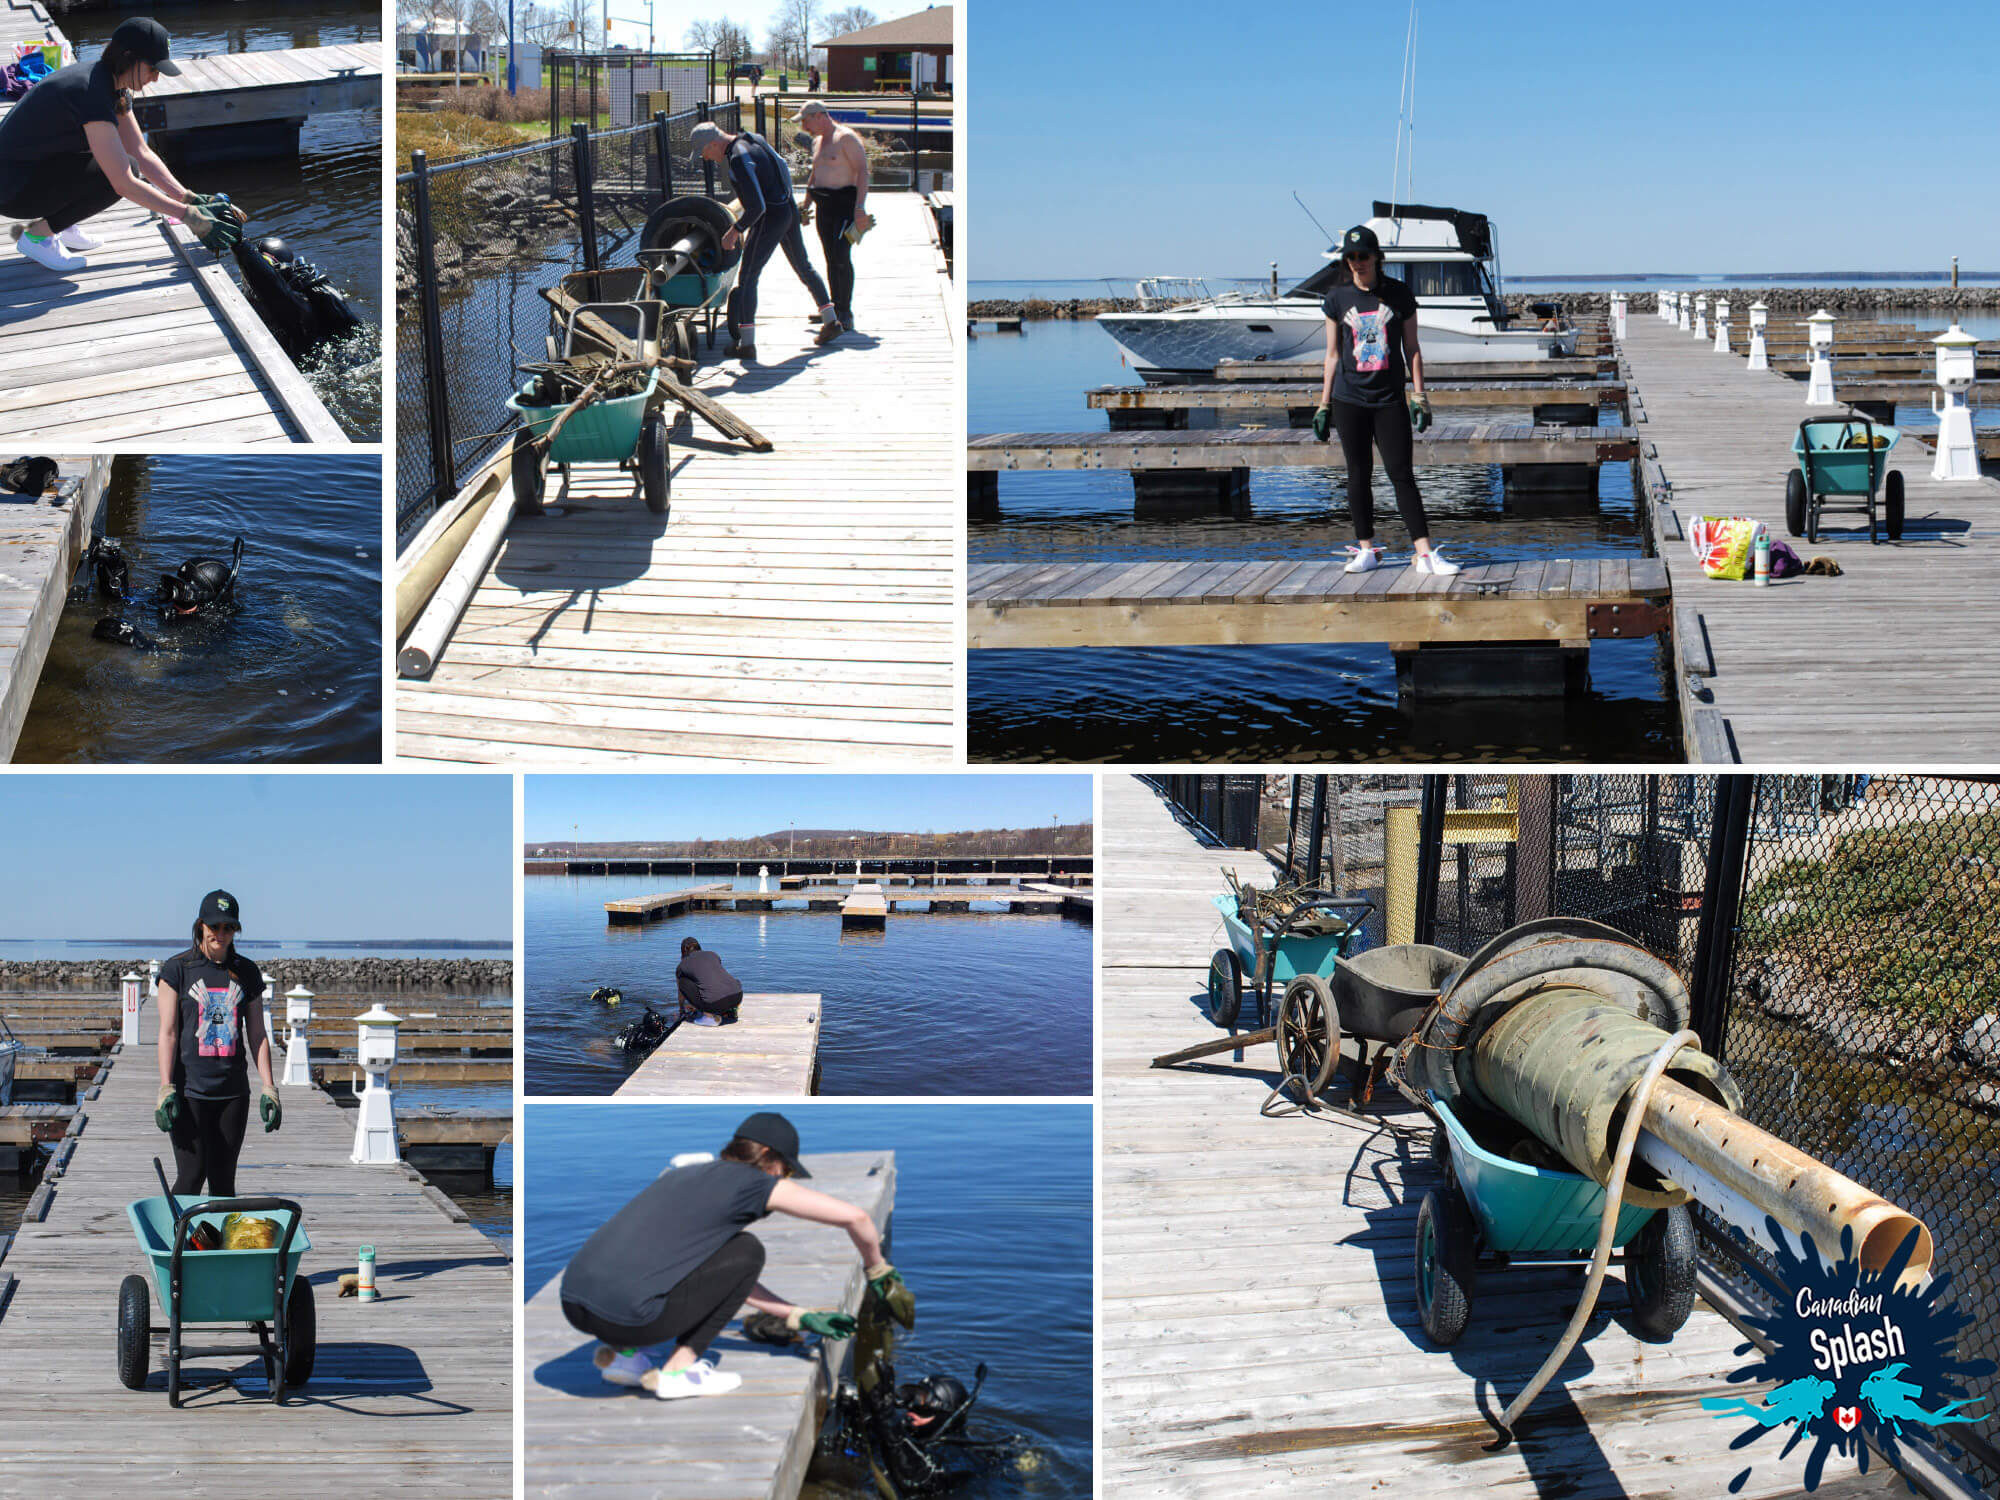 Mosaic Of The North Bay Scuba Clean Up In The Waterfront Harbour, Ontario, Canadian Scuba Diving